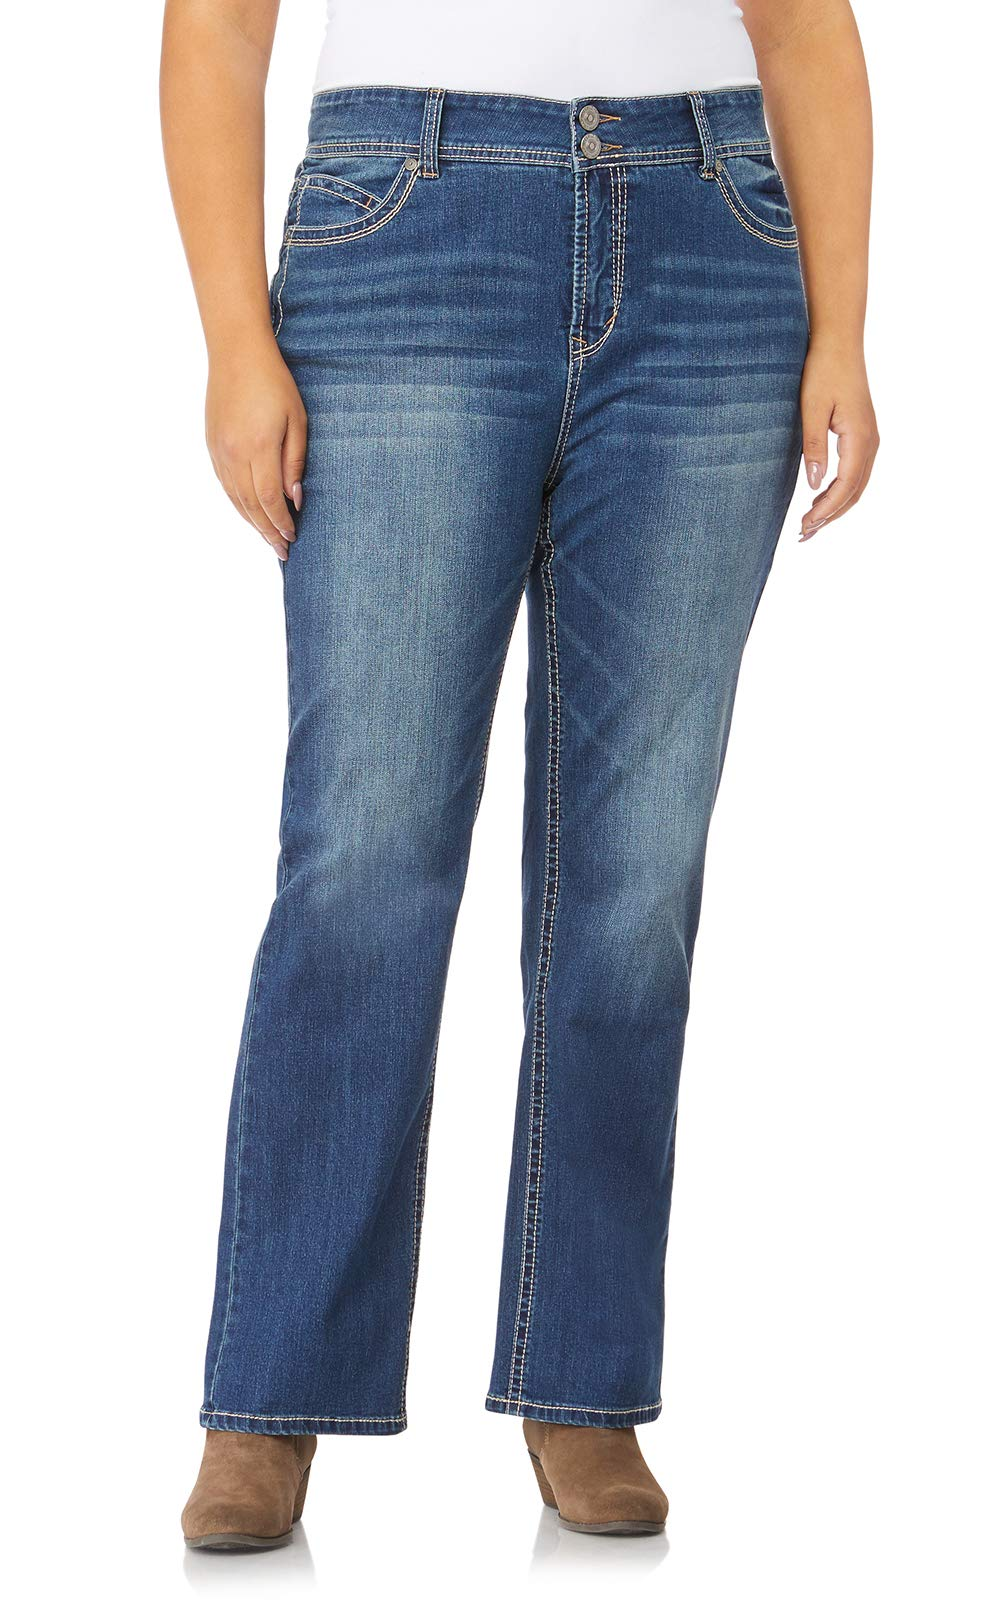 WallFlower Plus Size Luscious Curvy Basic Bootcut Jeans in Katy Size:20 Plus Short